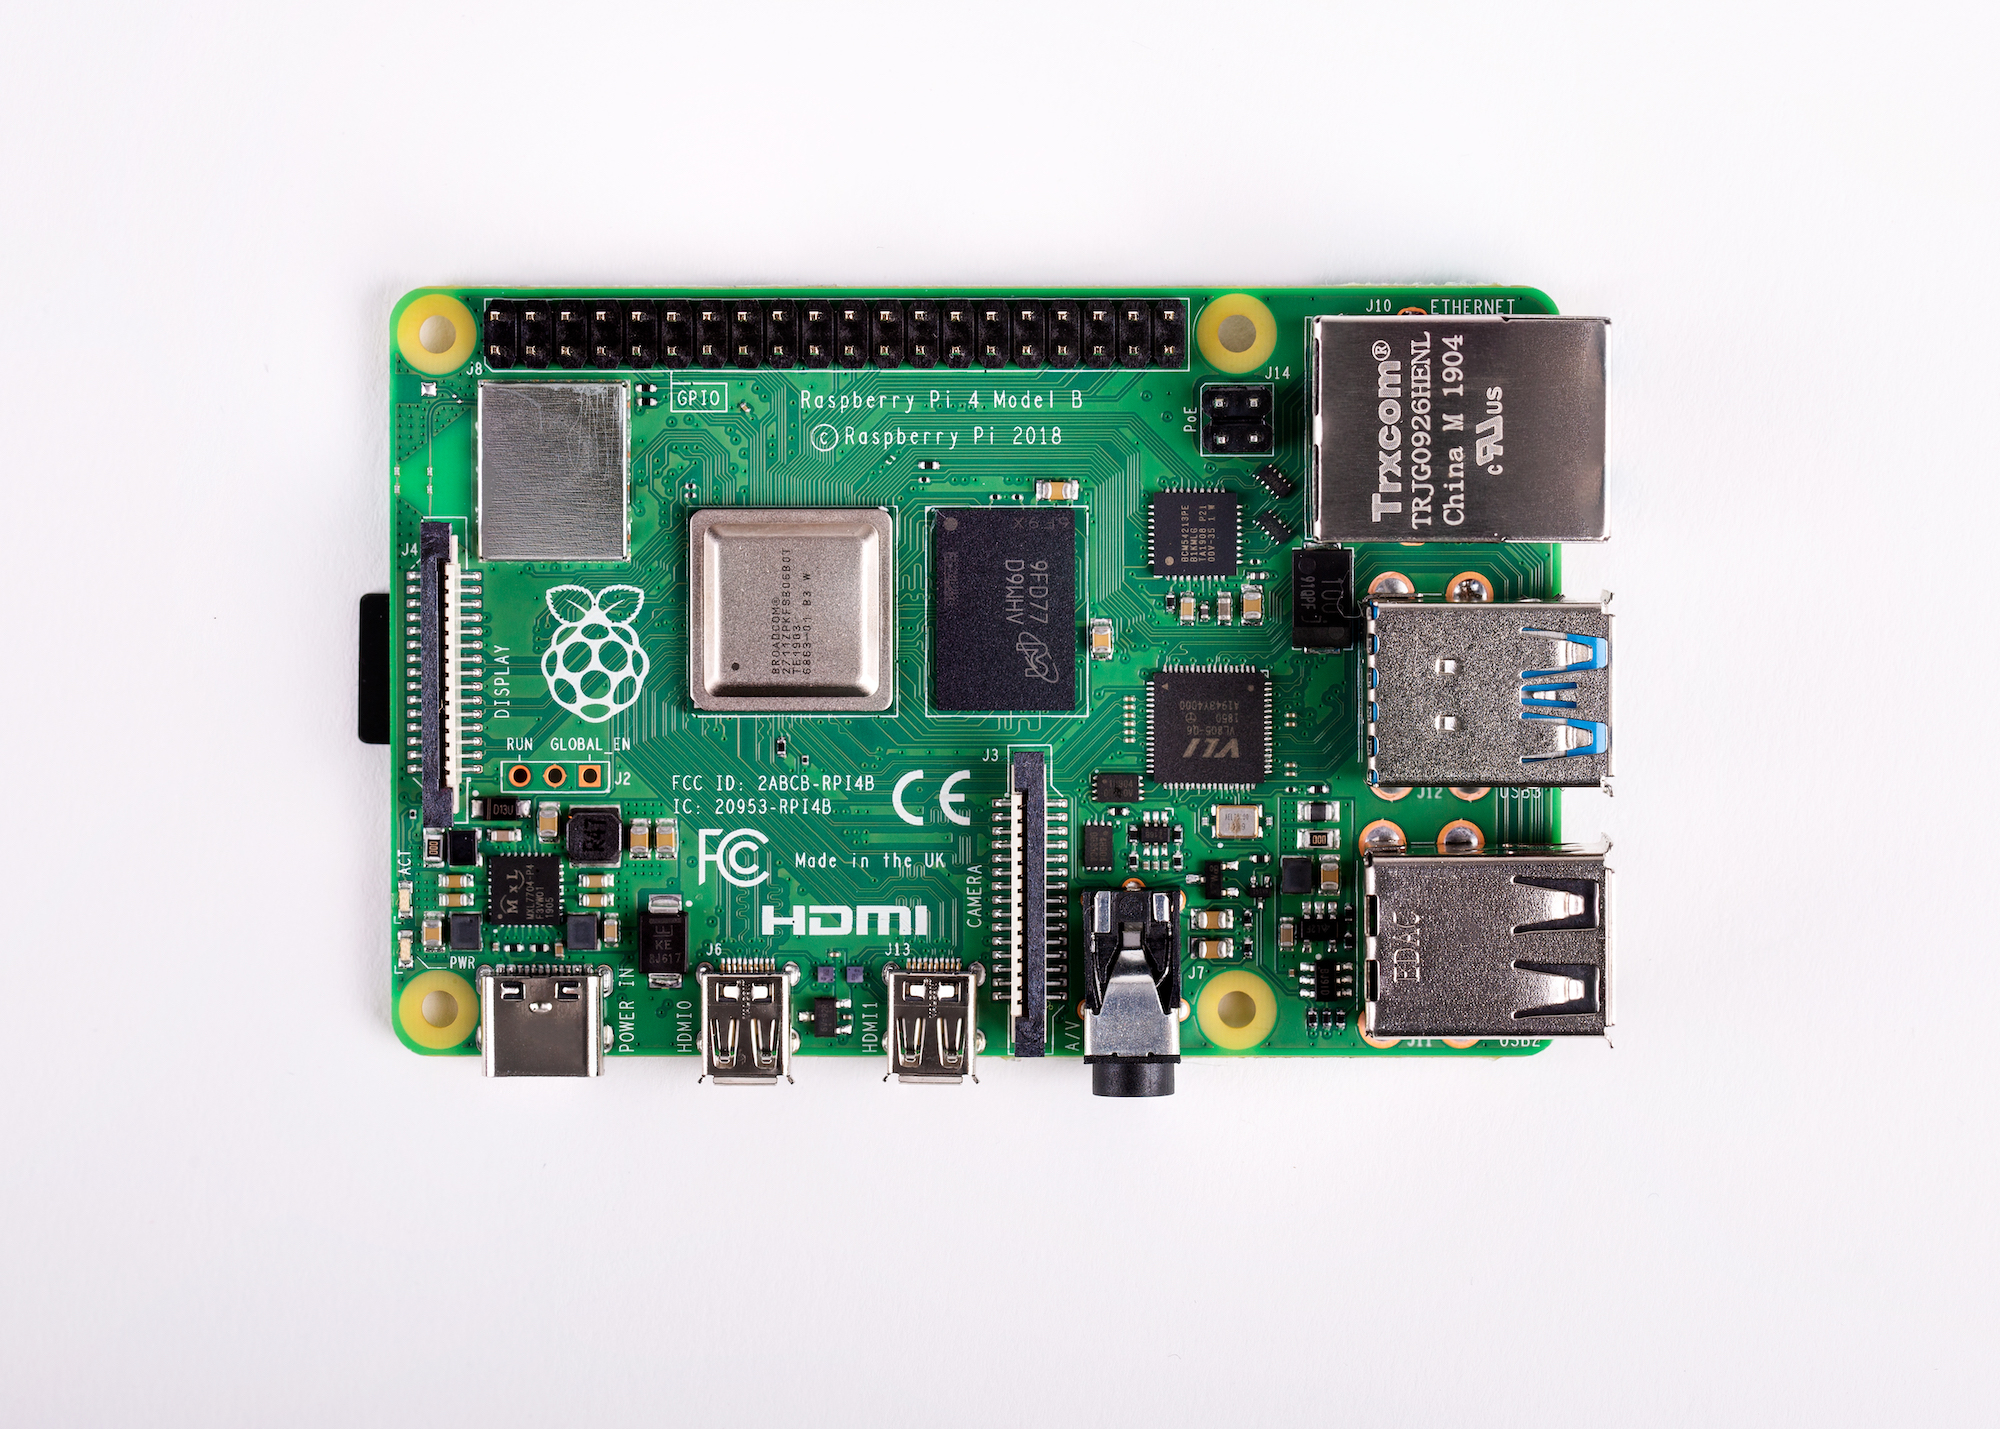 What was your first Raspberry Pi project? - Raspberry Pi